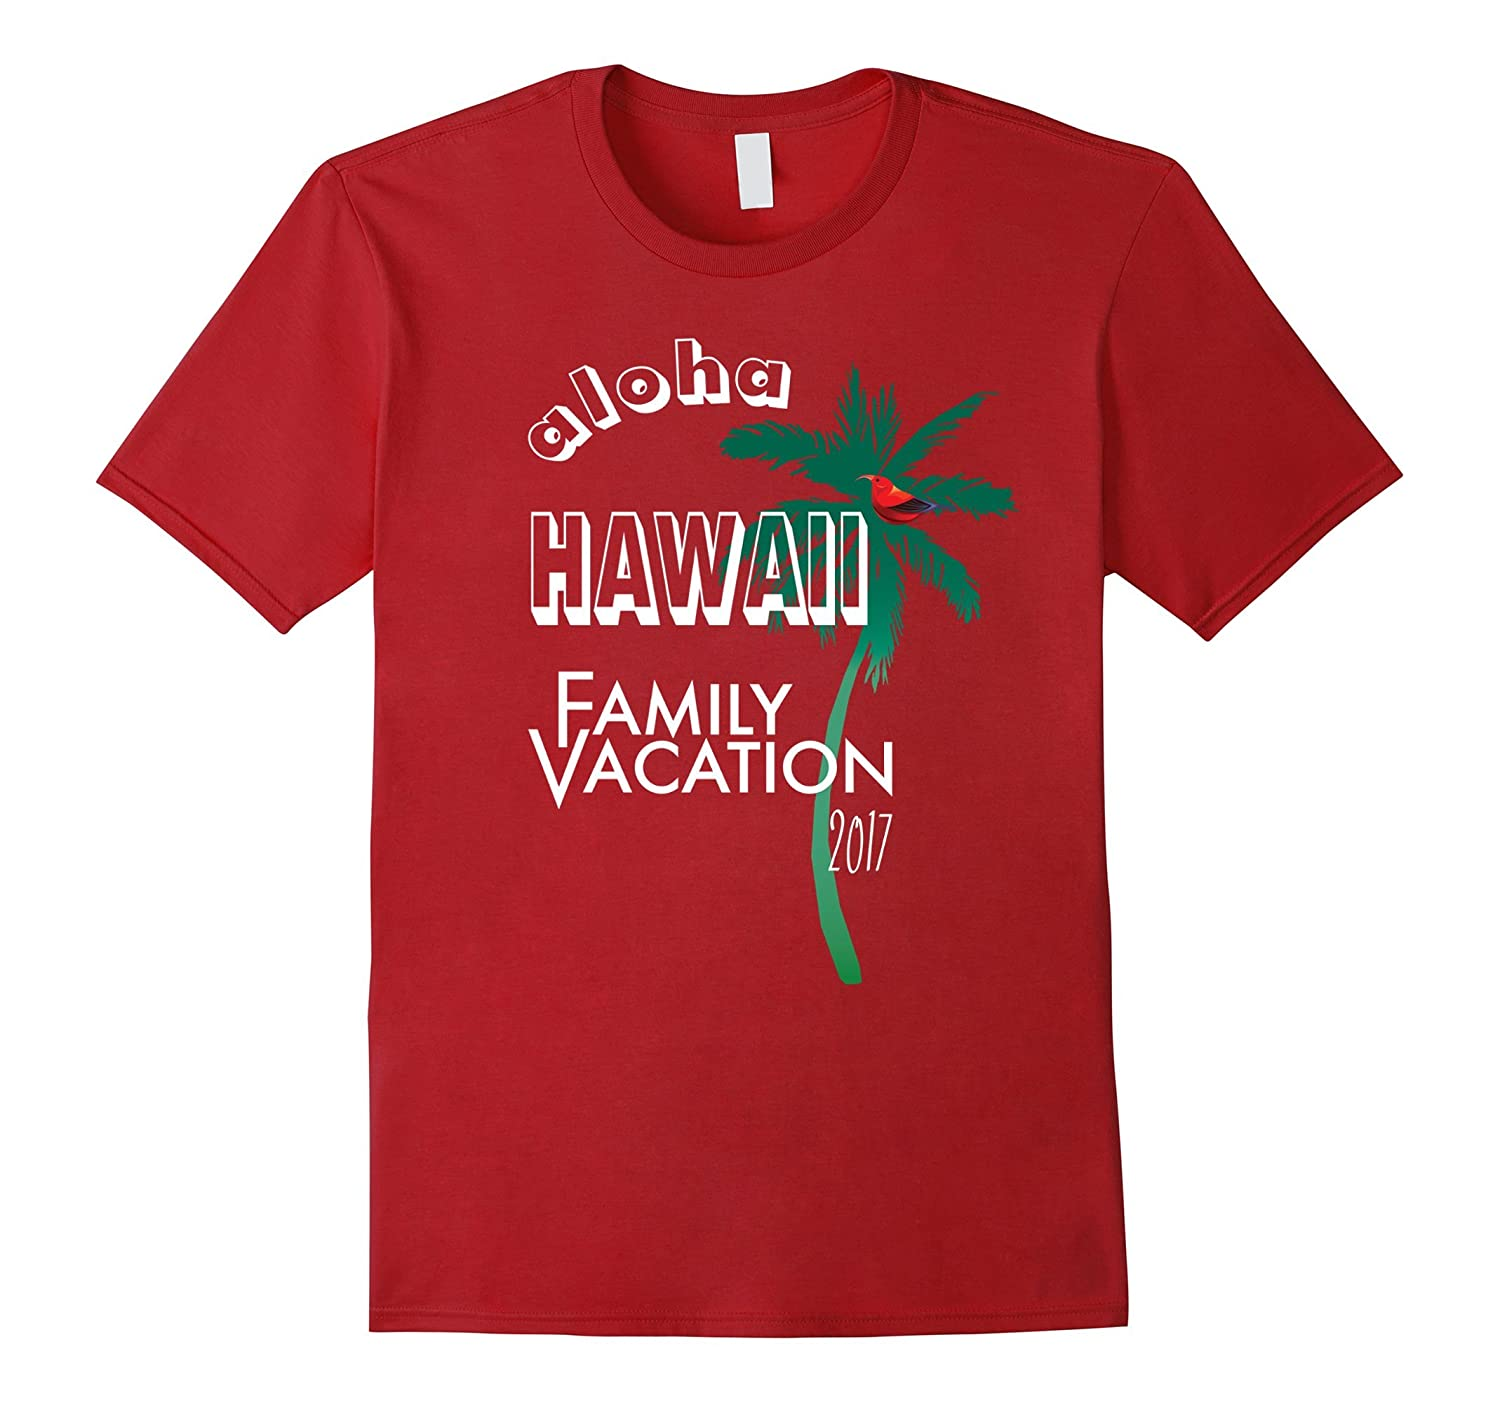 Hawaii Family Vacation Shirt 2017-Souvenir Holiday Tee-T-Shirt